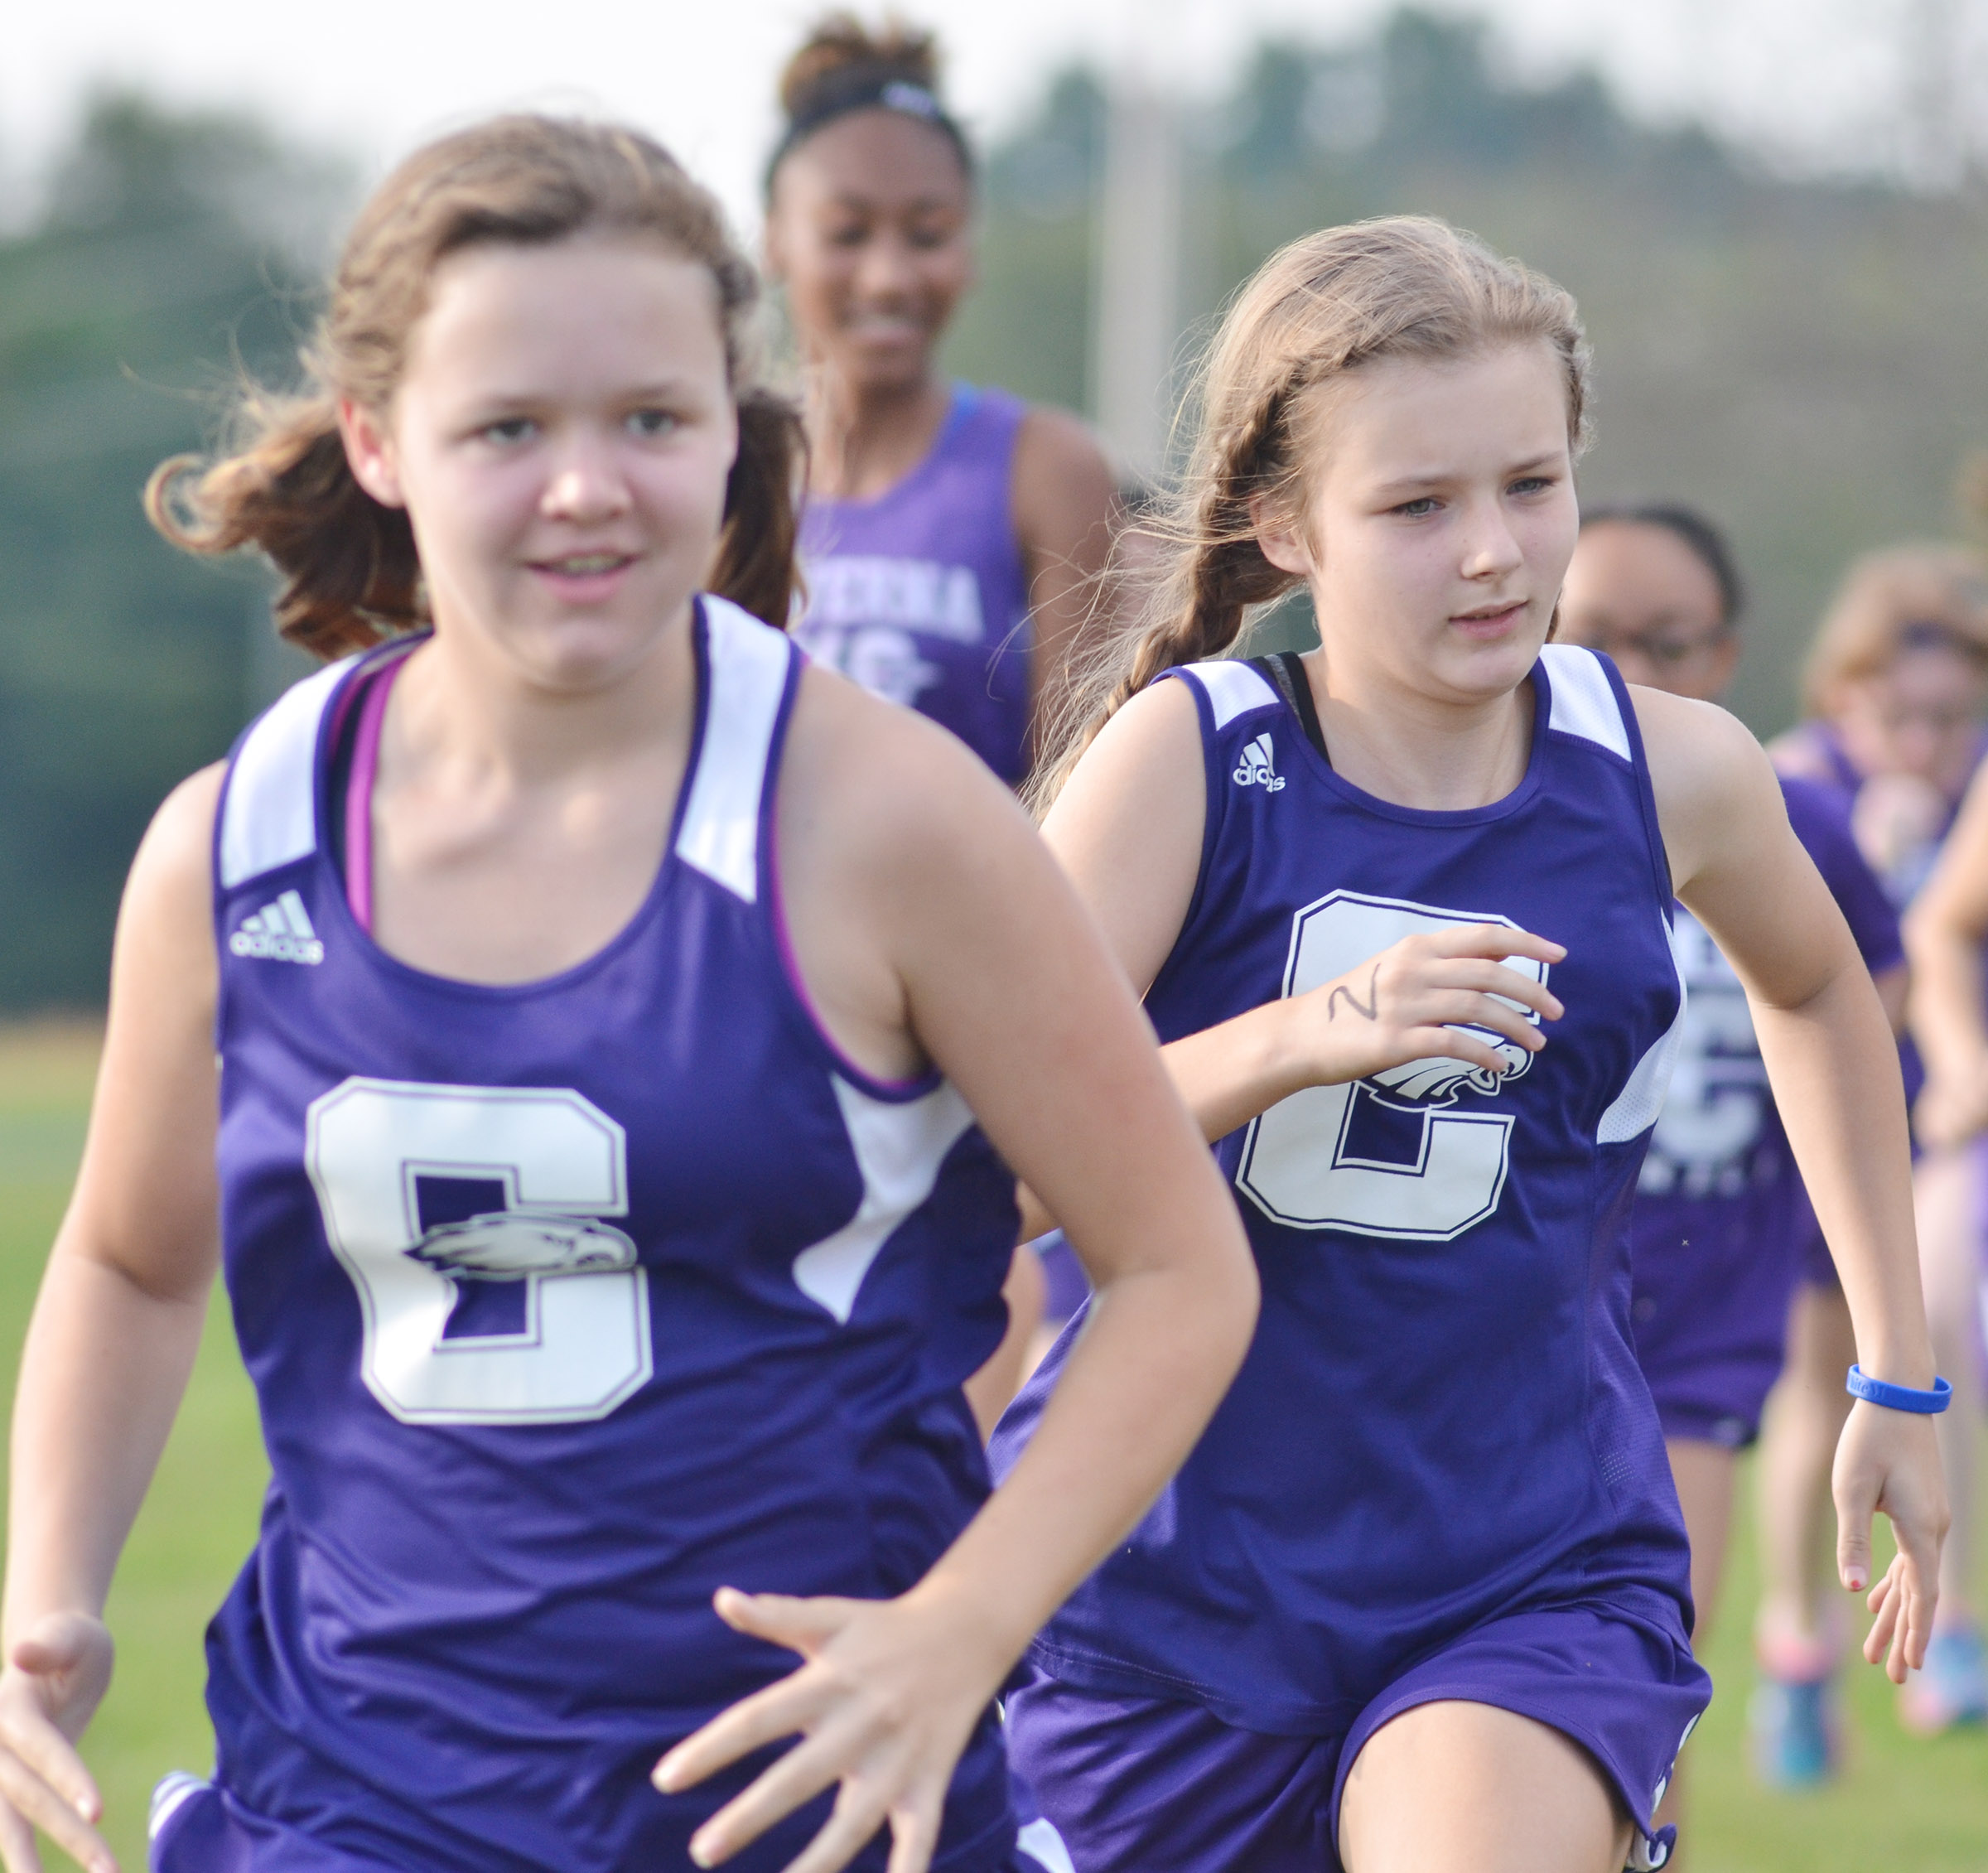 CMS seventh-grader MaCayla Falls, at left, and eighth-grader Serenity Ford run.